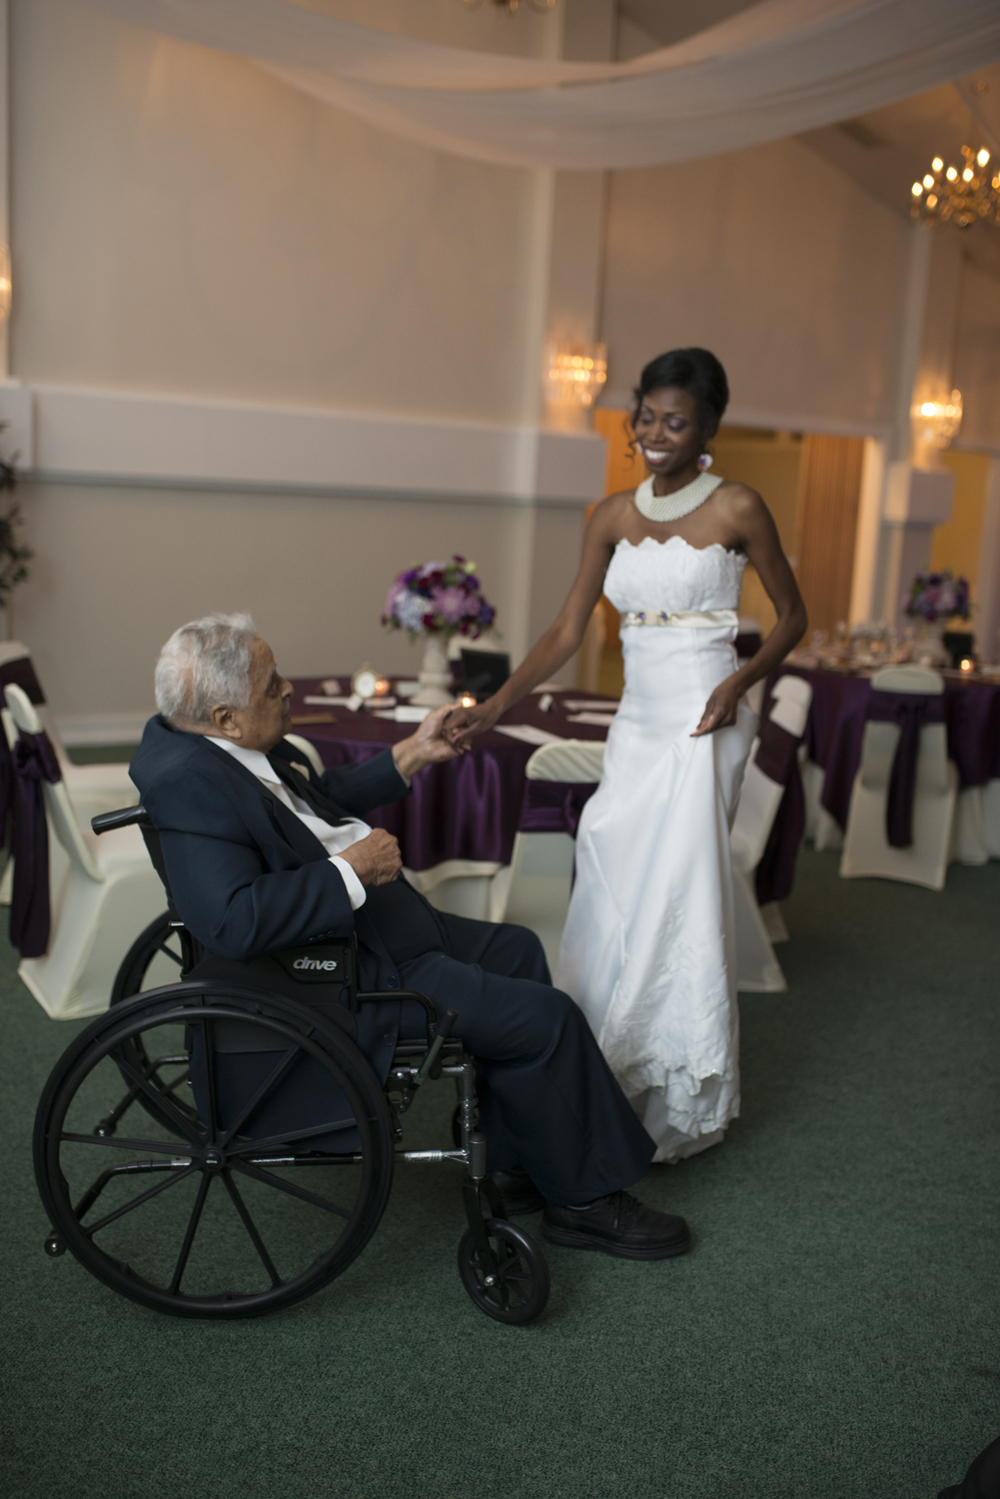 A bride dances with her grandfather on the wedding day